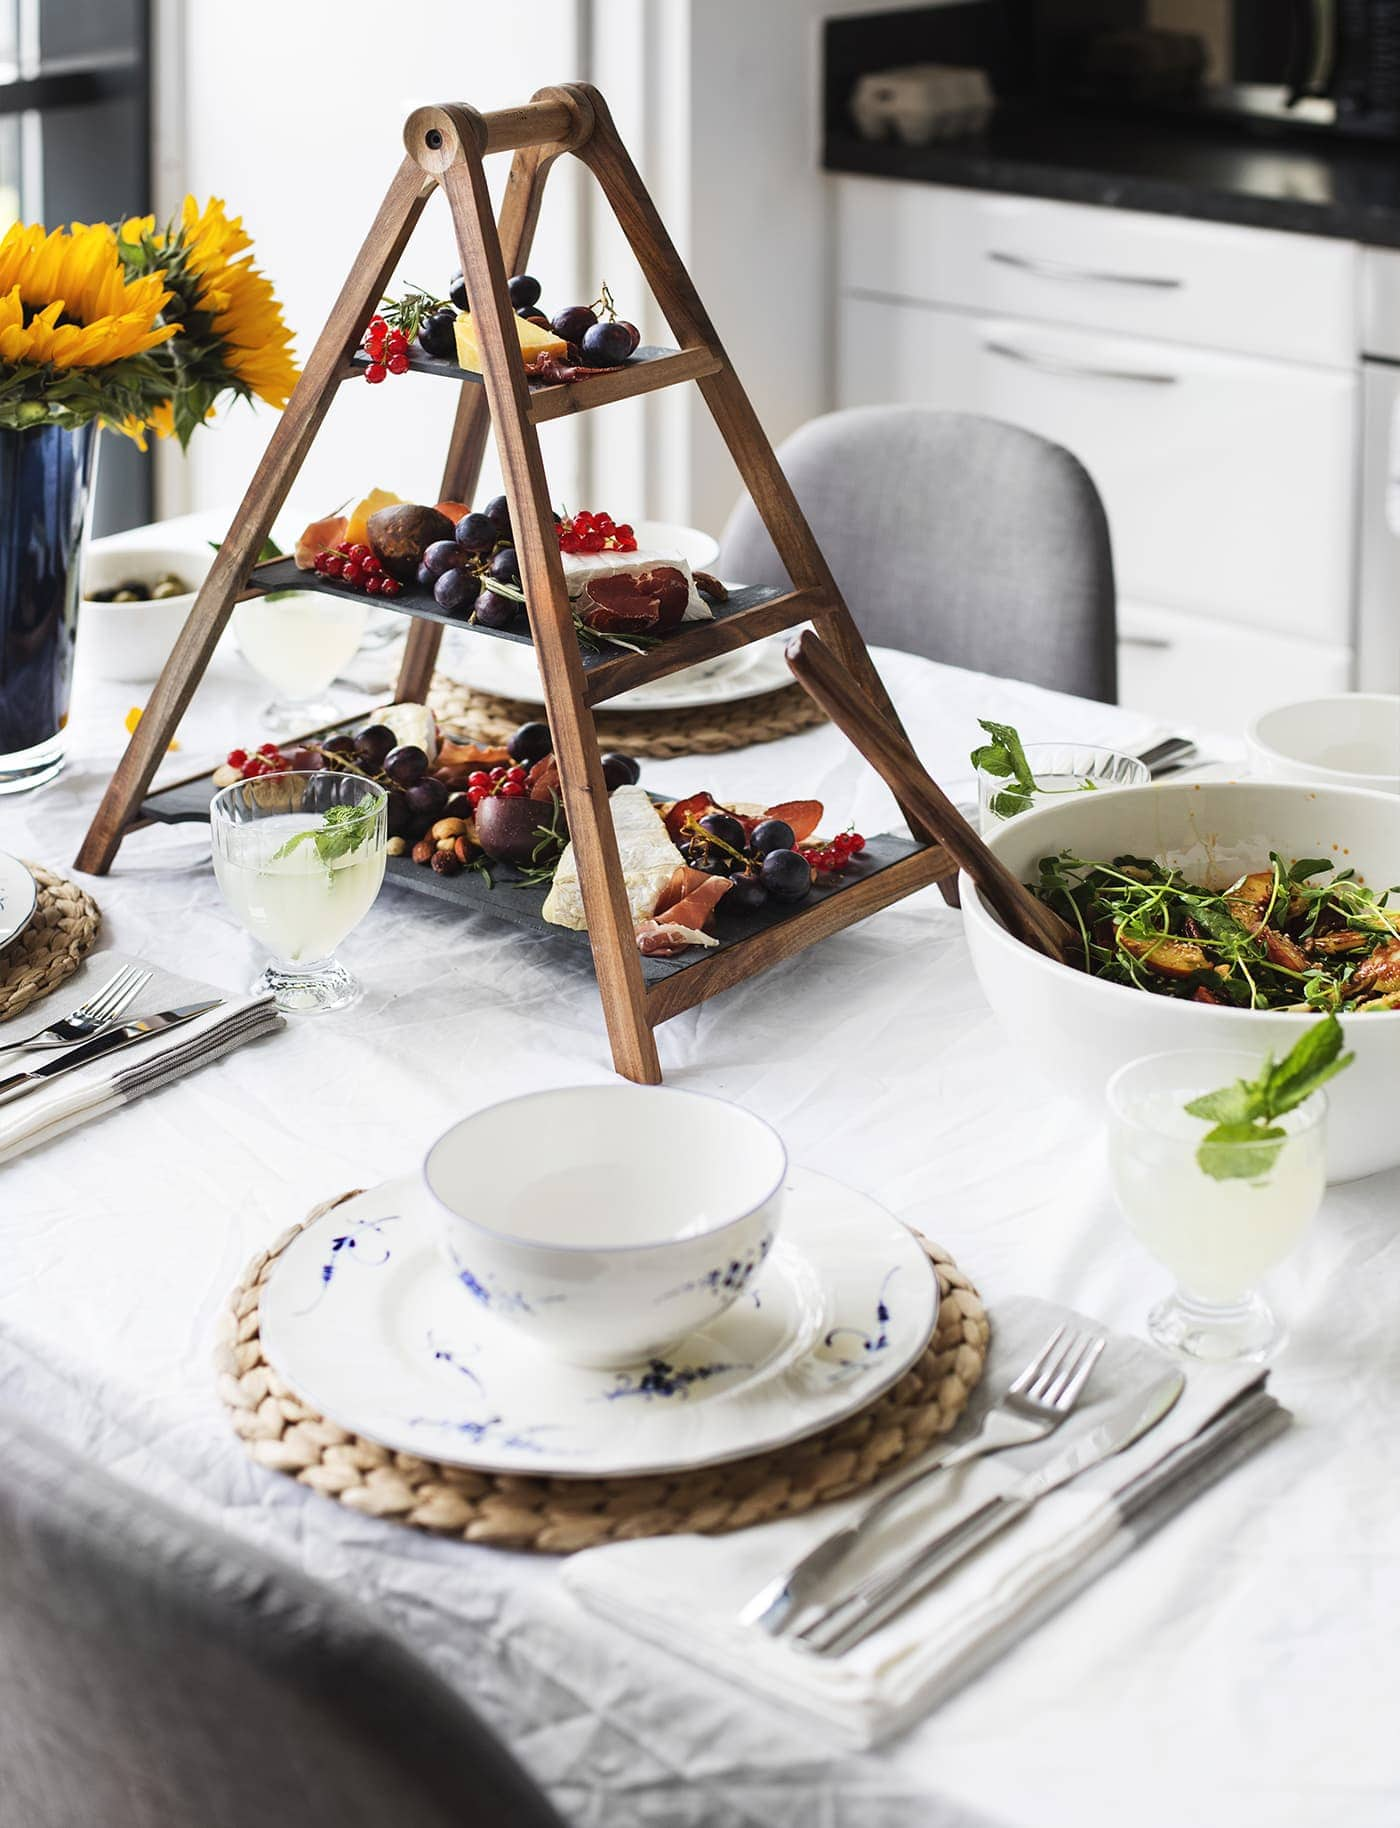 Villery Und Boch Mix N Match Old New Casual Dinner With Villeroy Boch The